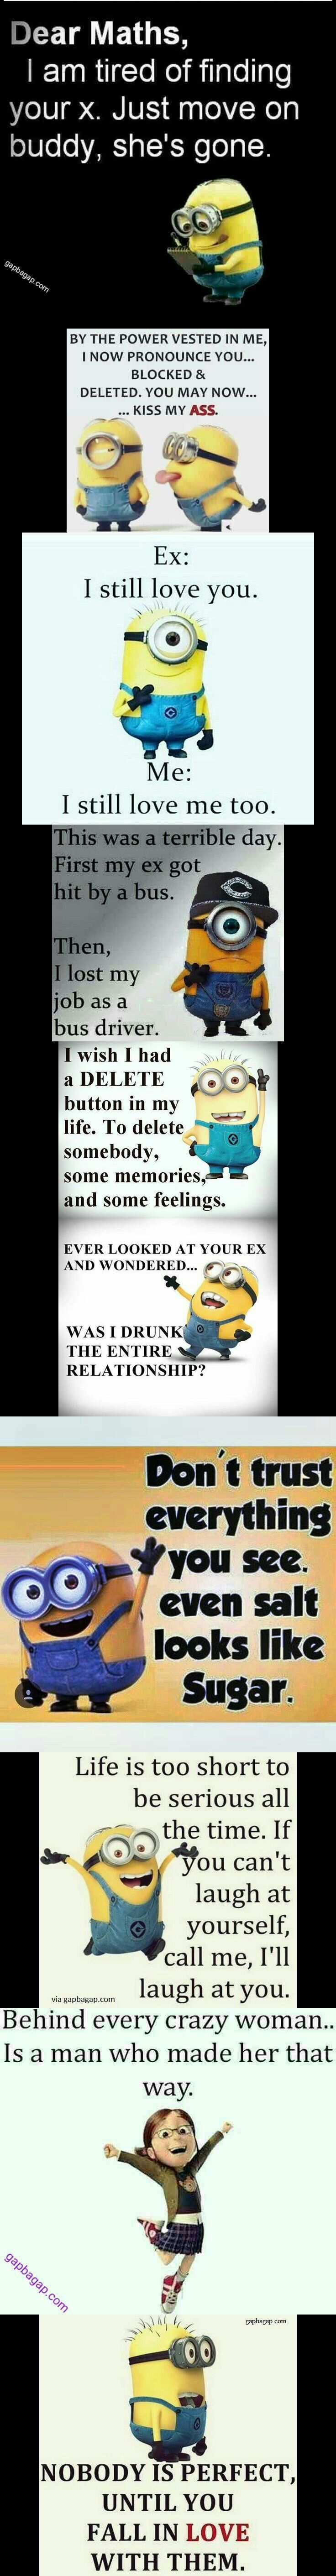 Top 10 Funny Quotes About Exes By The #Minions